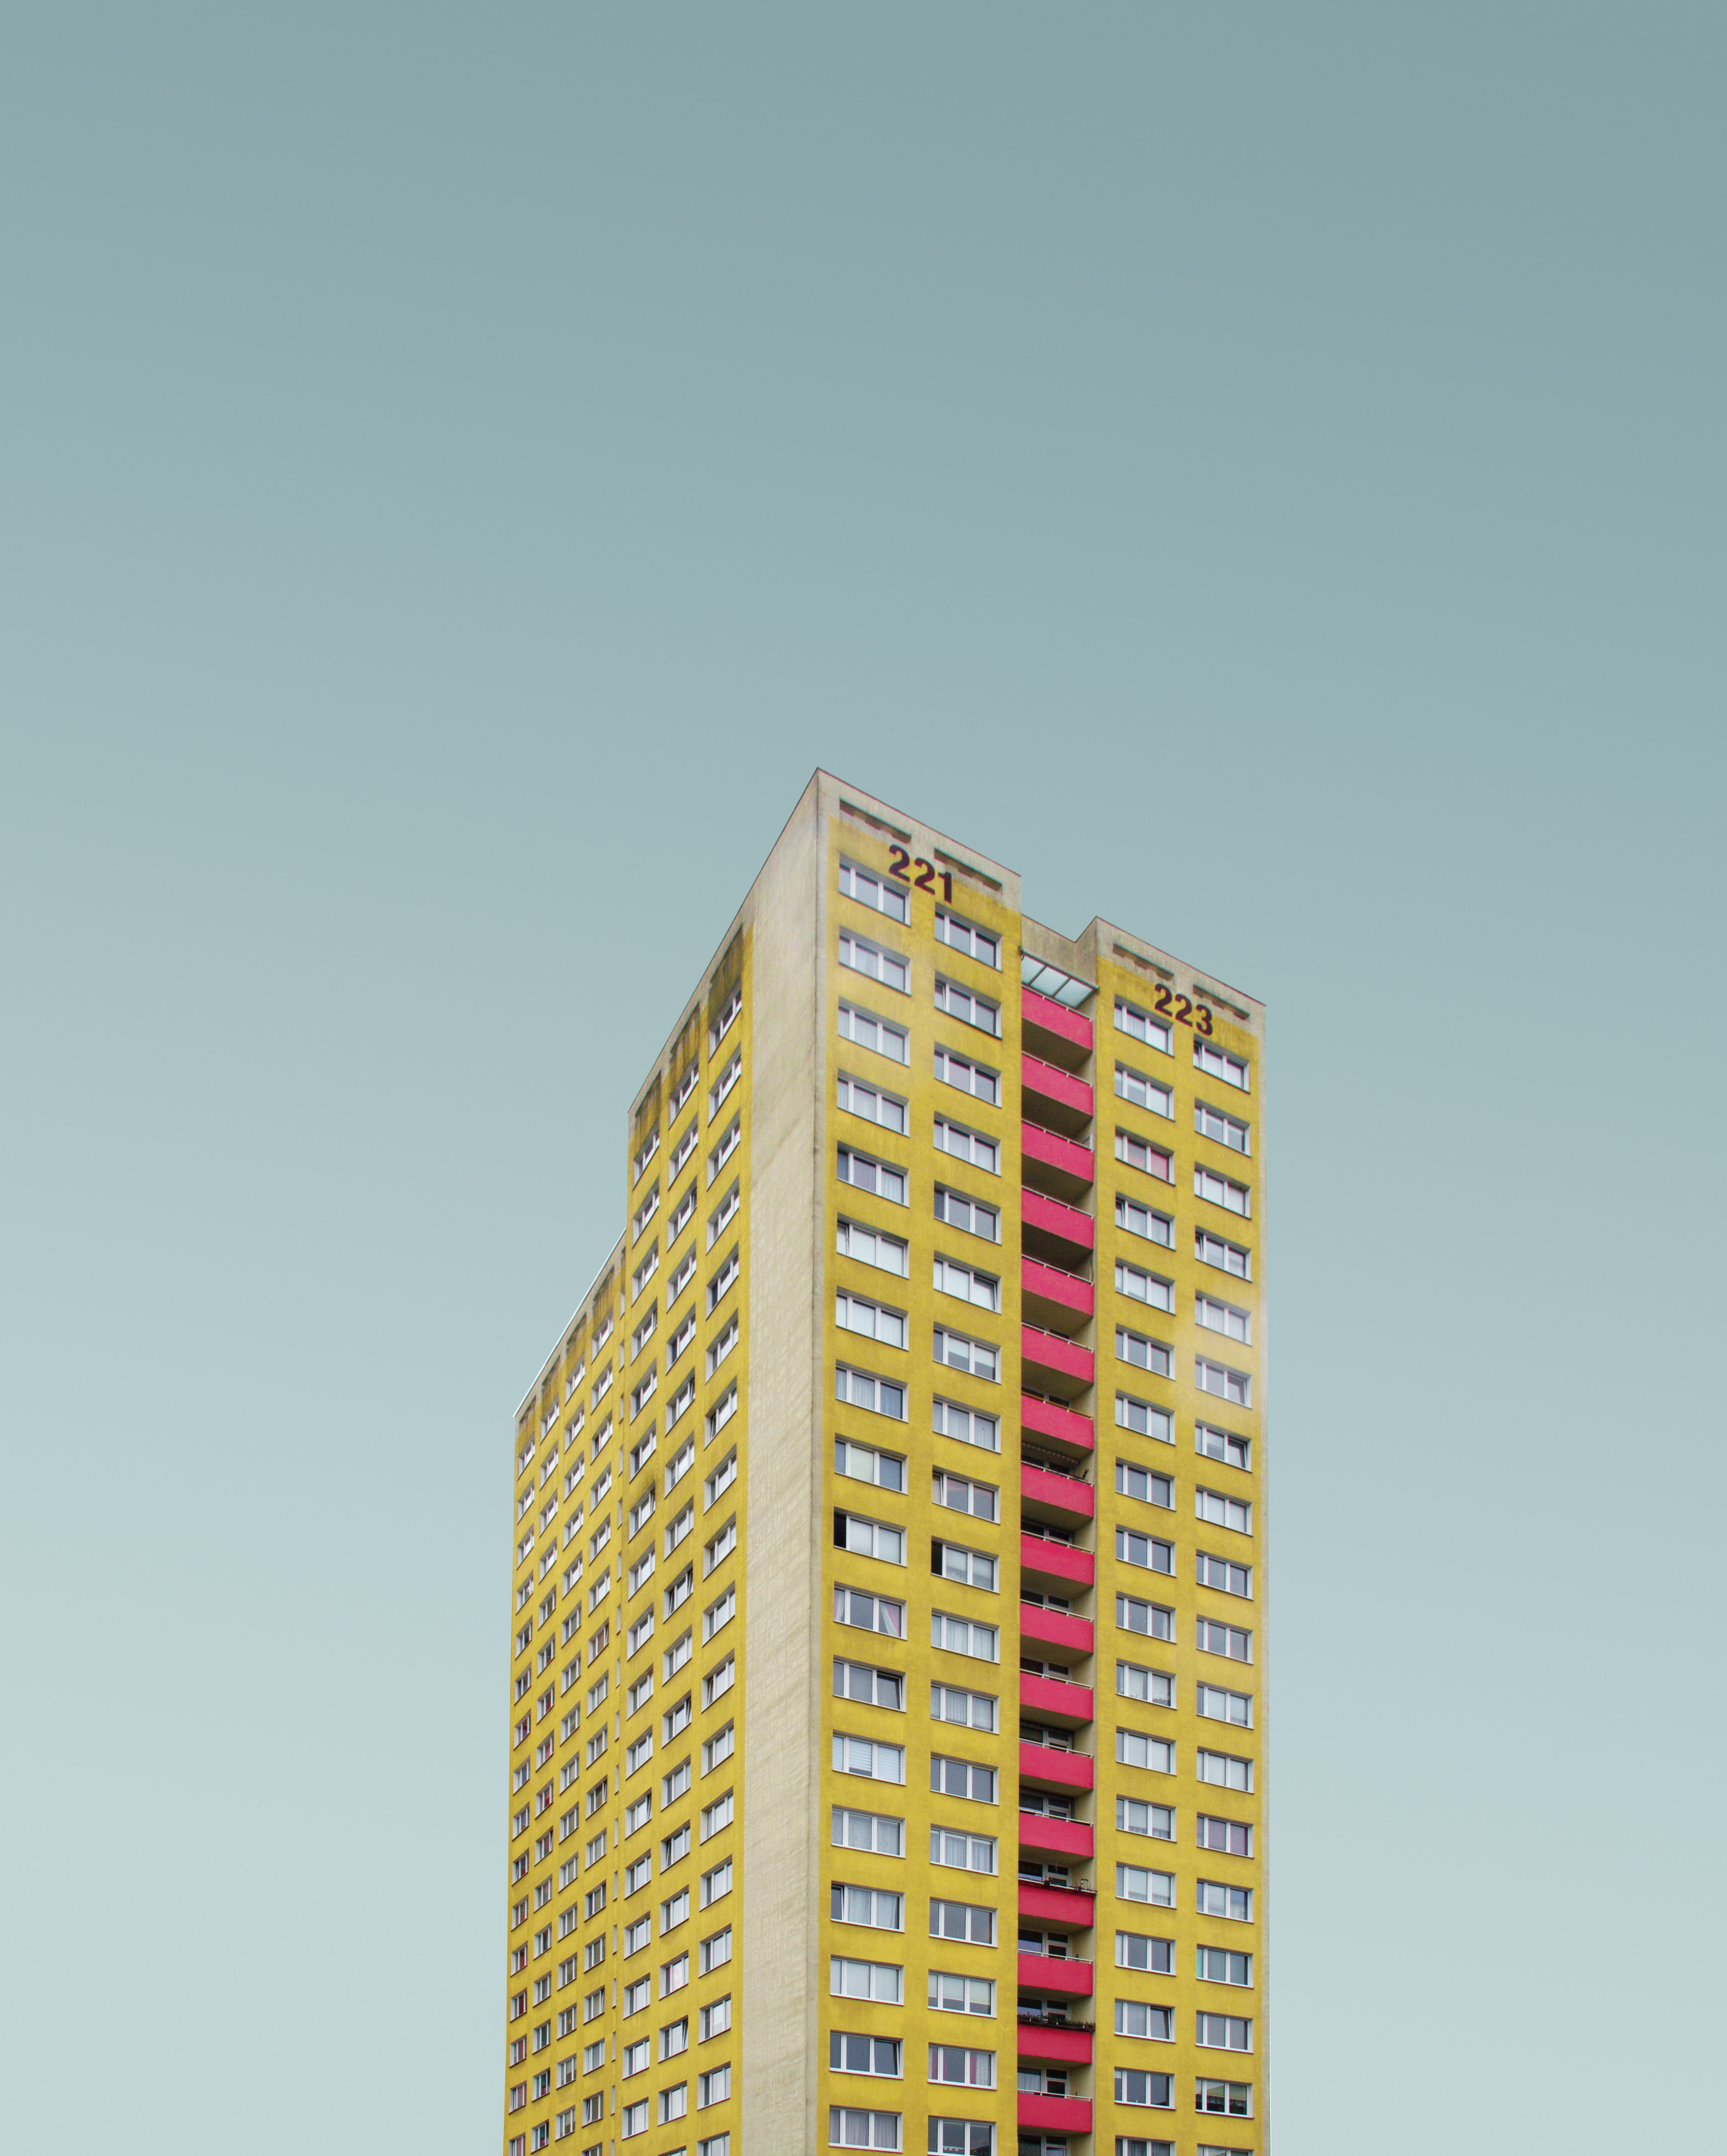 yellow and red high rise building